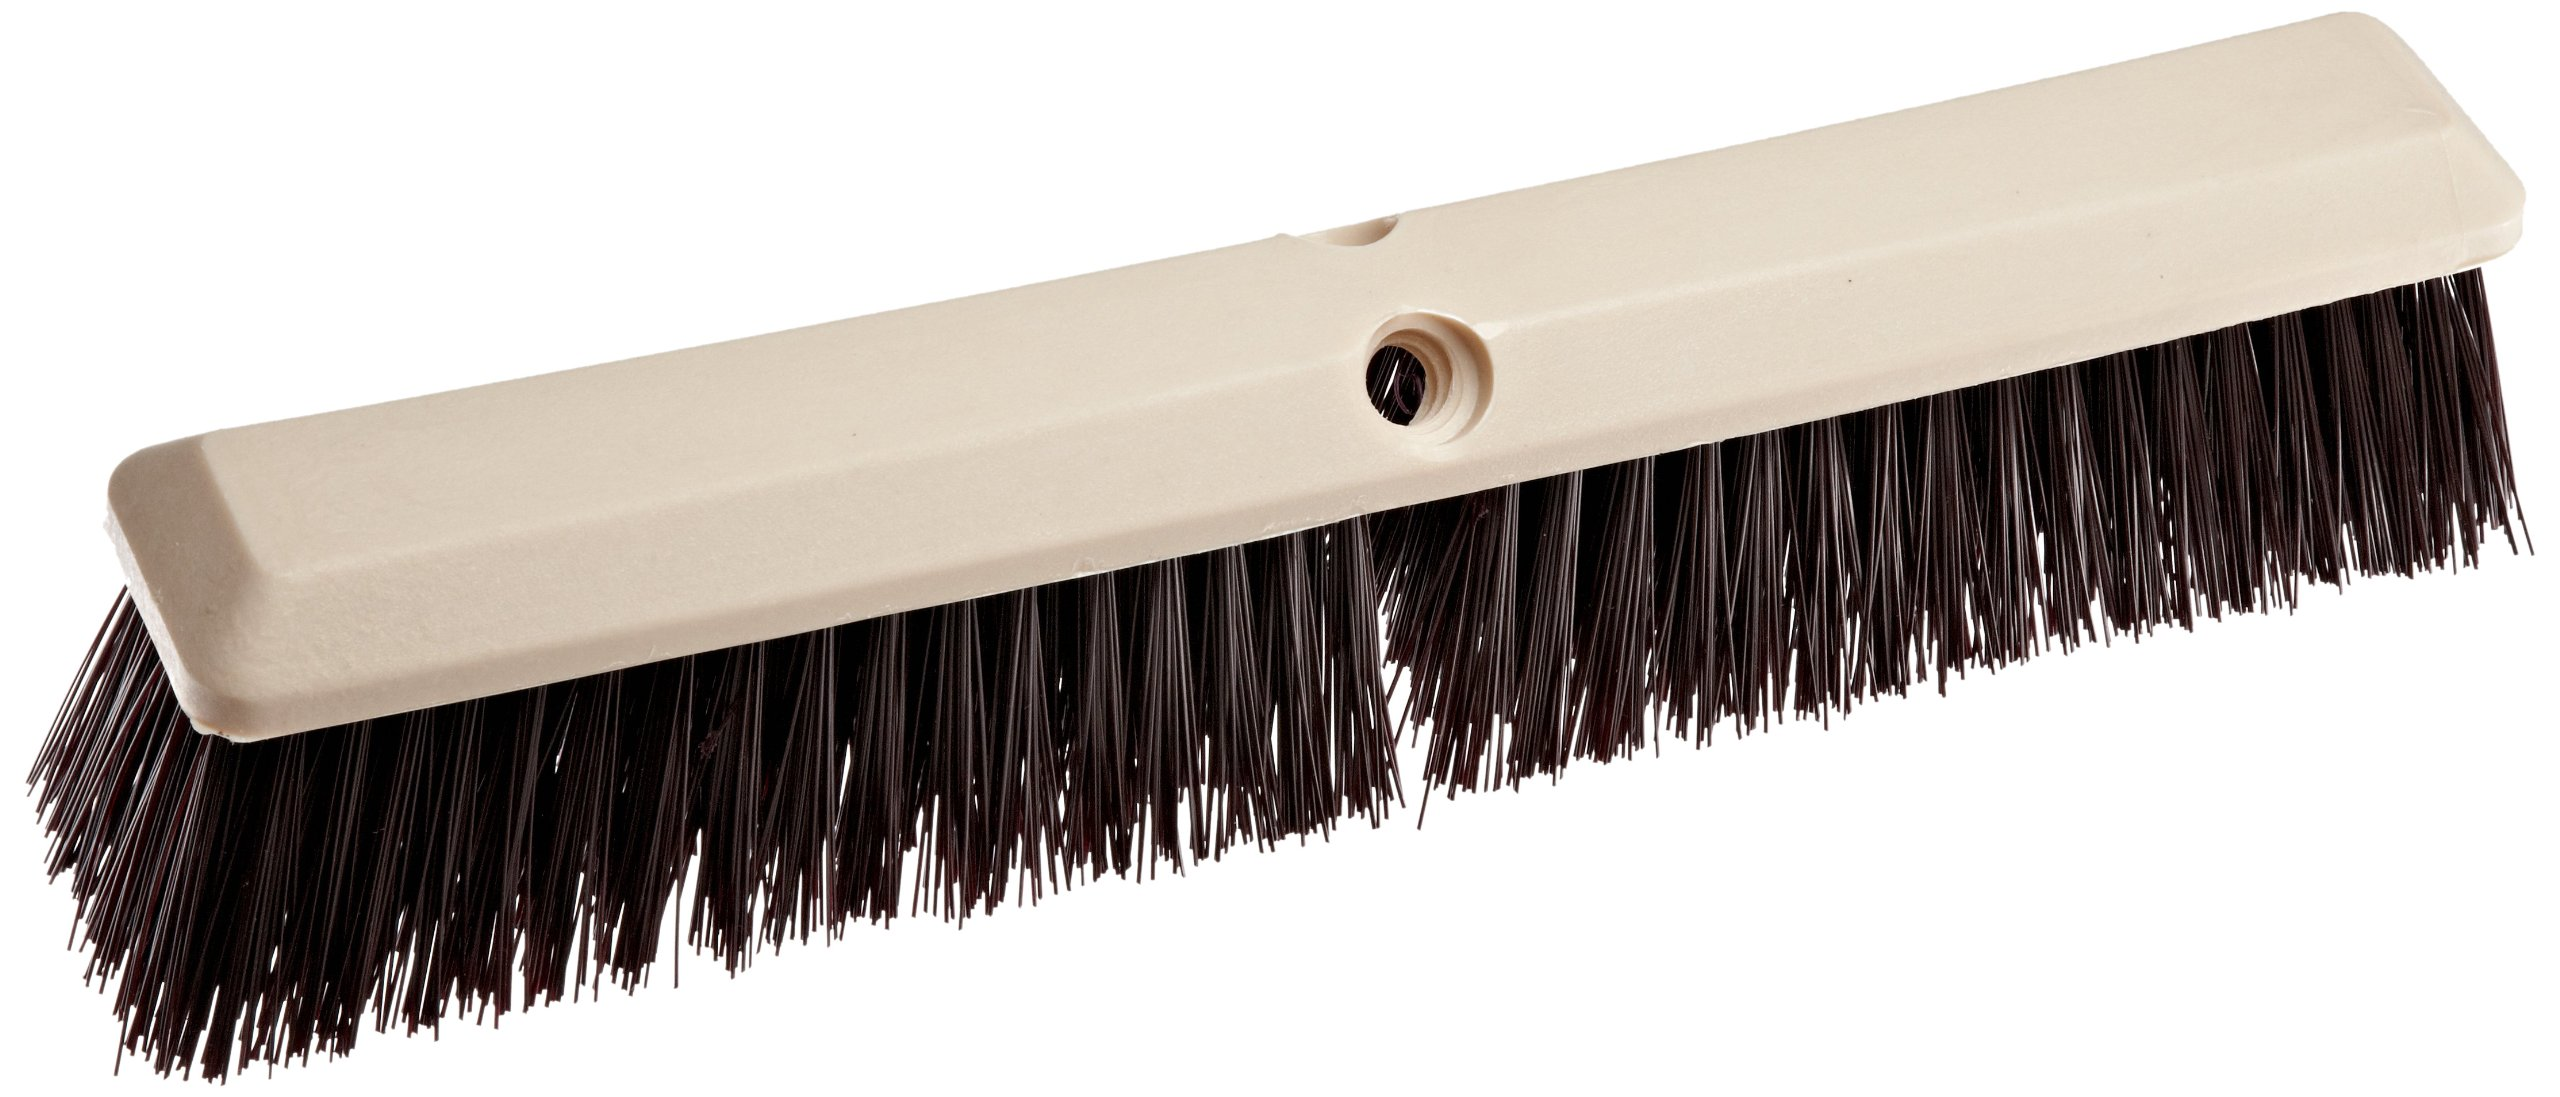 Weiler 42167 Polystyrene Coarse Sweep Floor Brush with Wood Handle, 2-1/2'' Handle Width, 18'' Overall Length, Natural